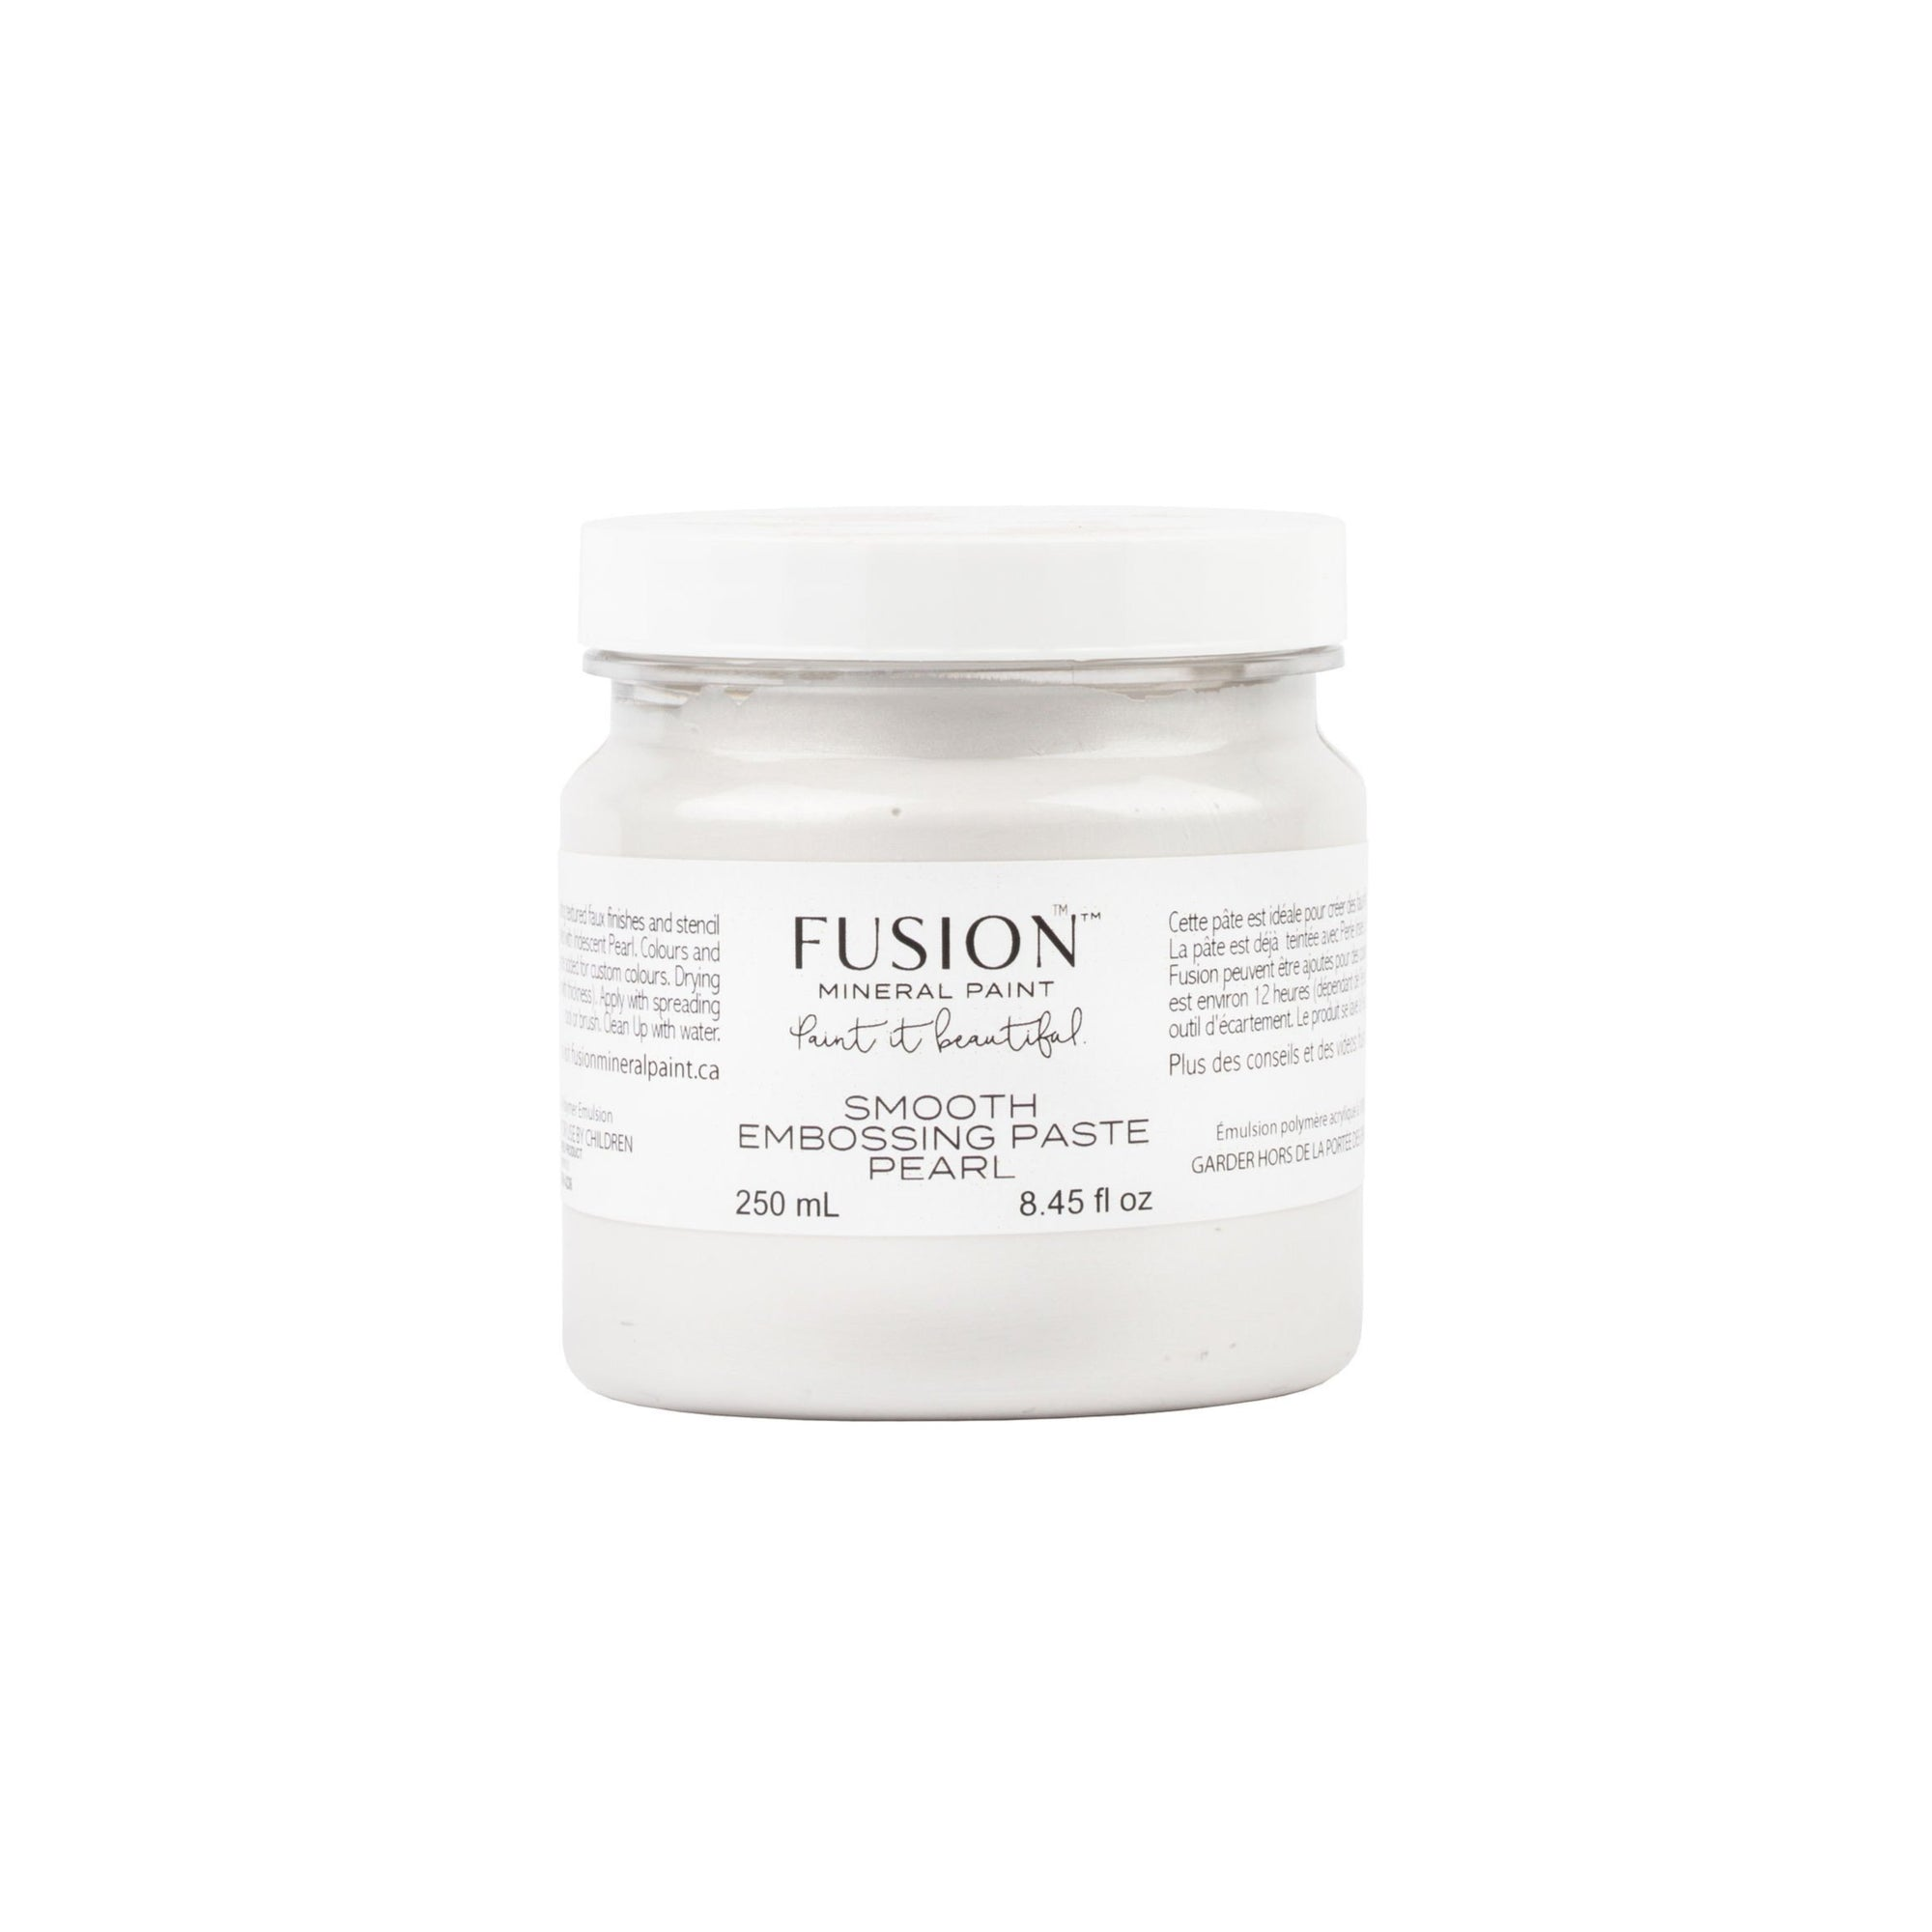 fusion mineral paint farmhouse inspired smooth embossing paste pearl diy